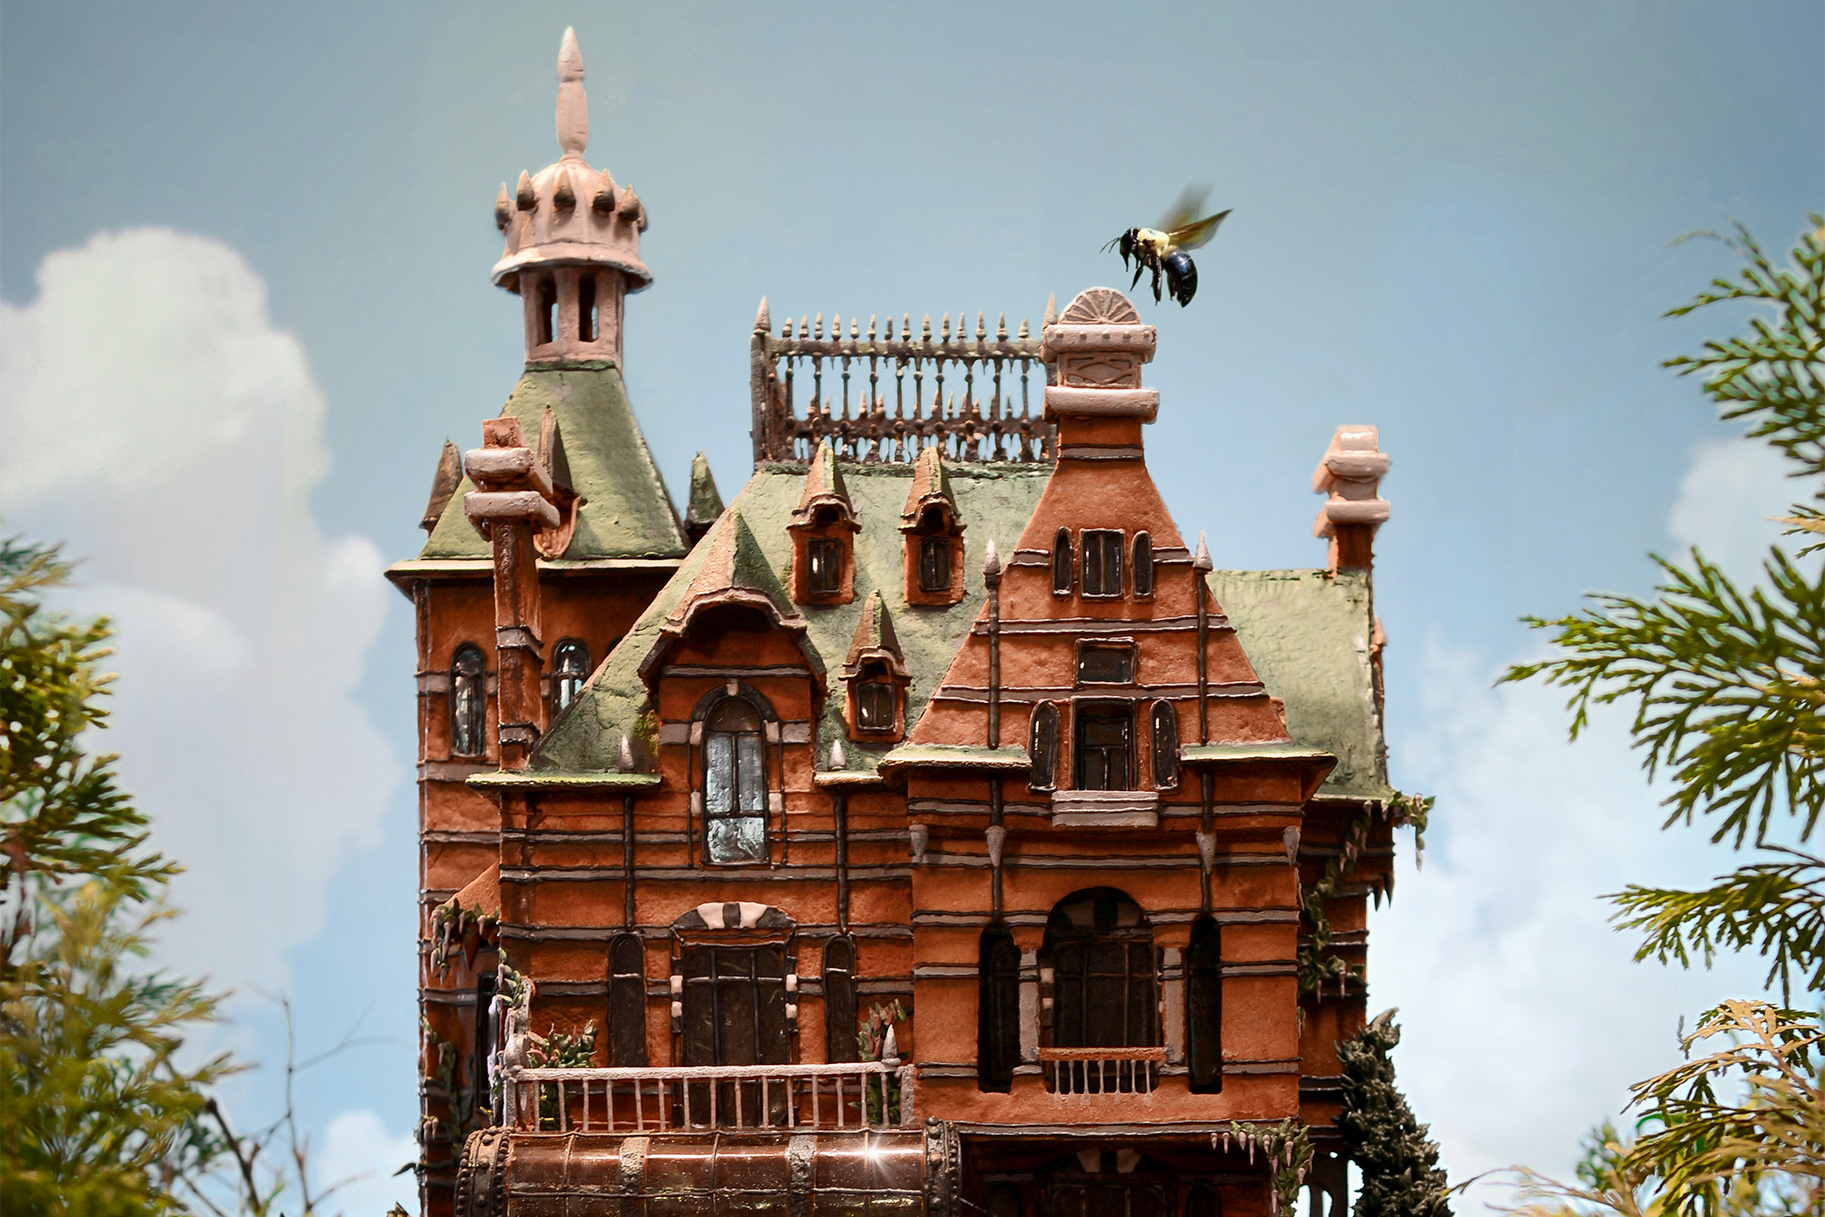 Gingerbread House is Replica of Rothschild's Waddesdon Manor